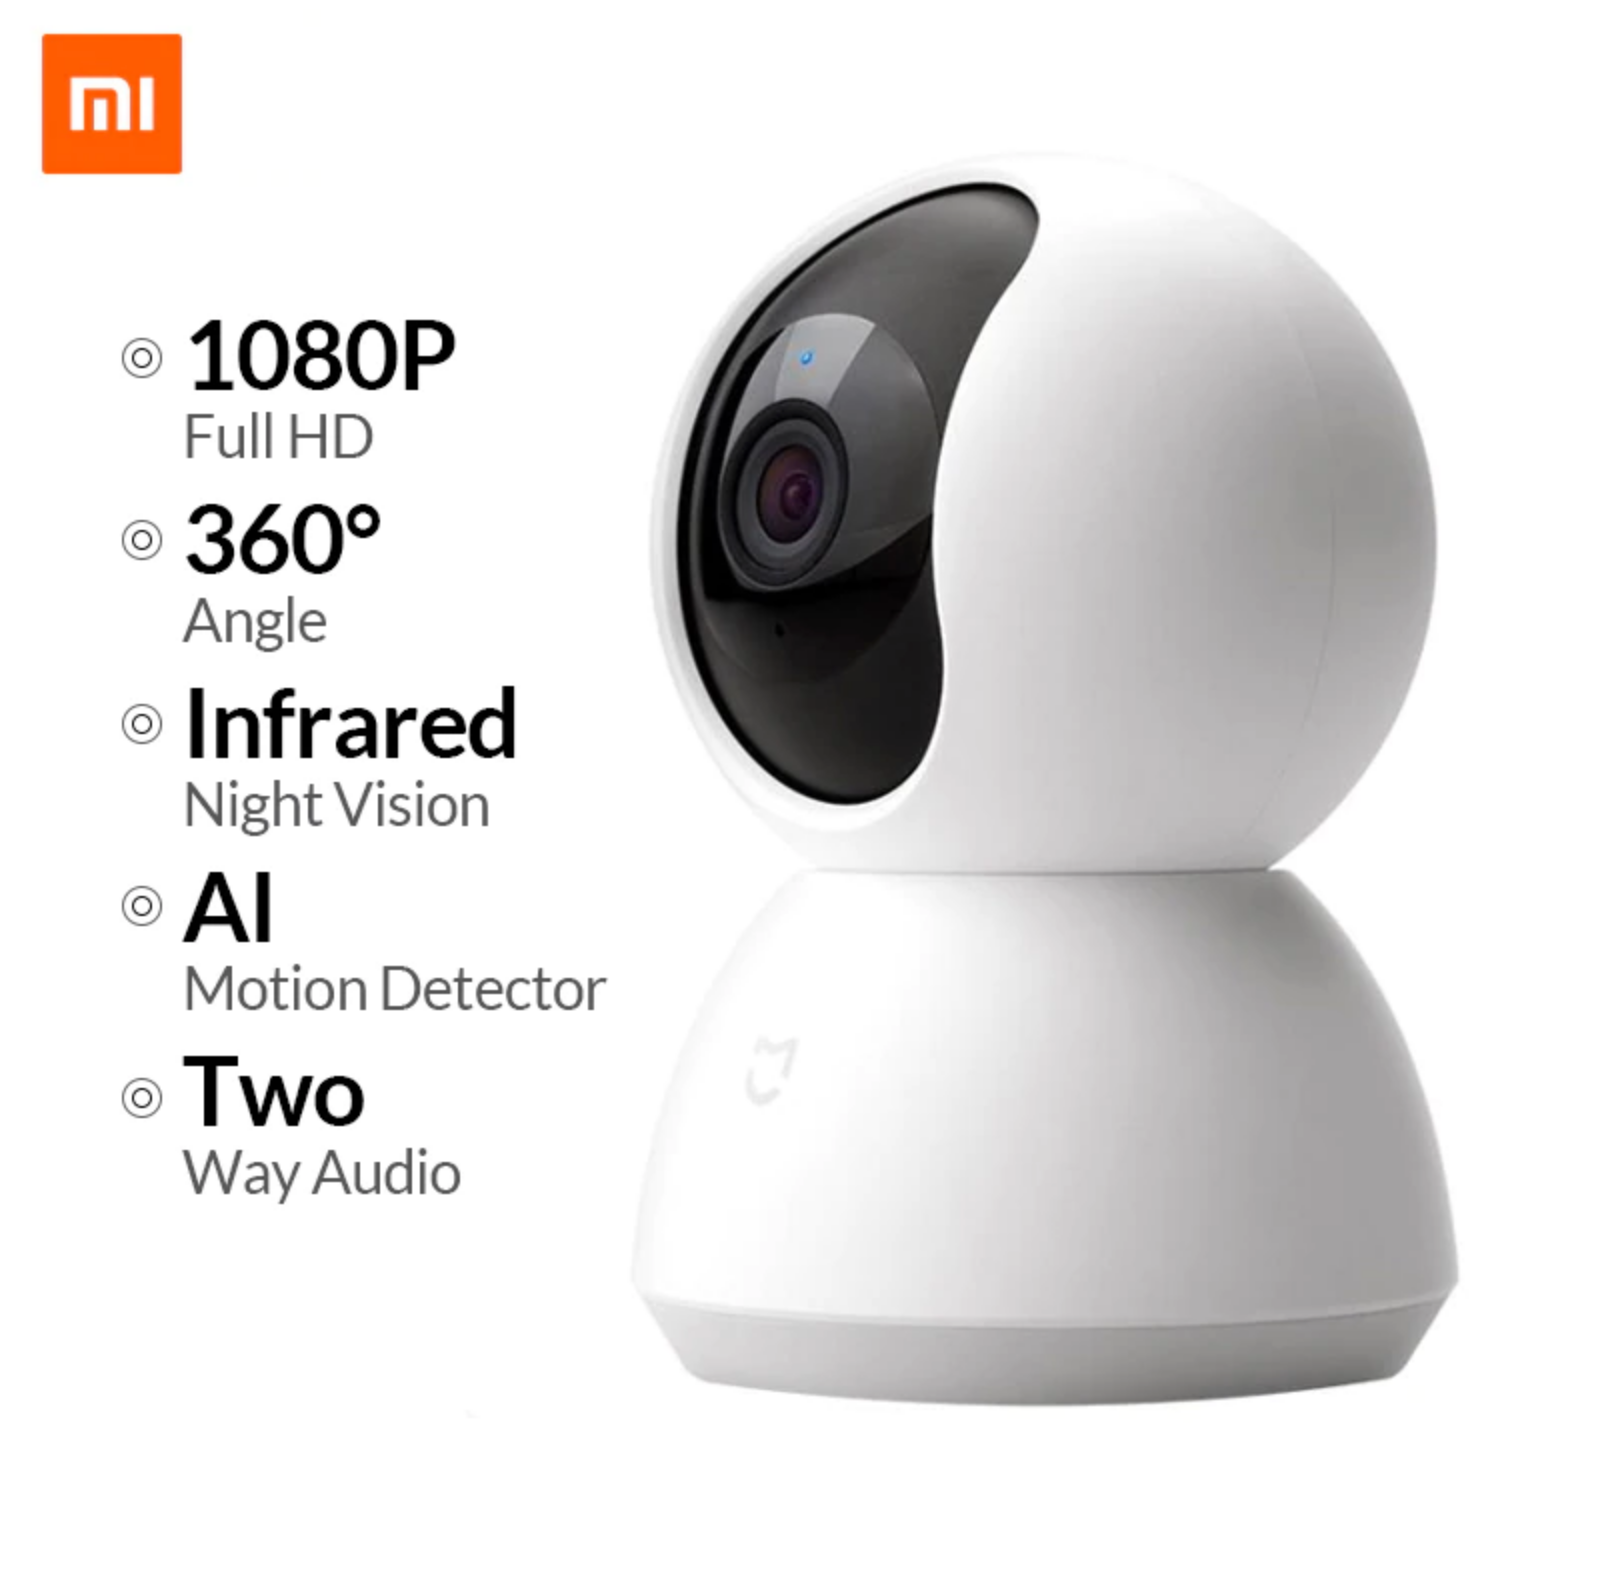 Wireless Smart Mi Home Security Camera System